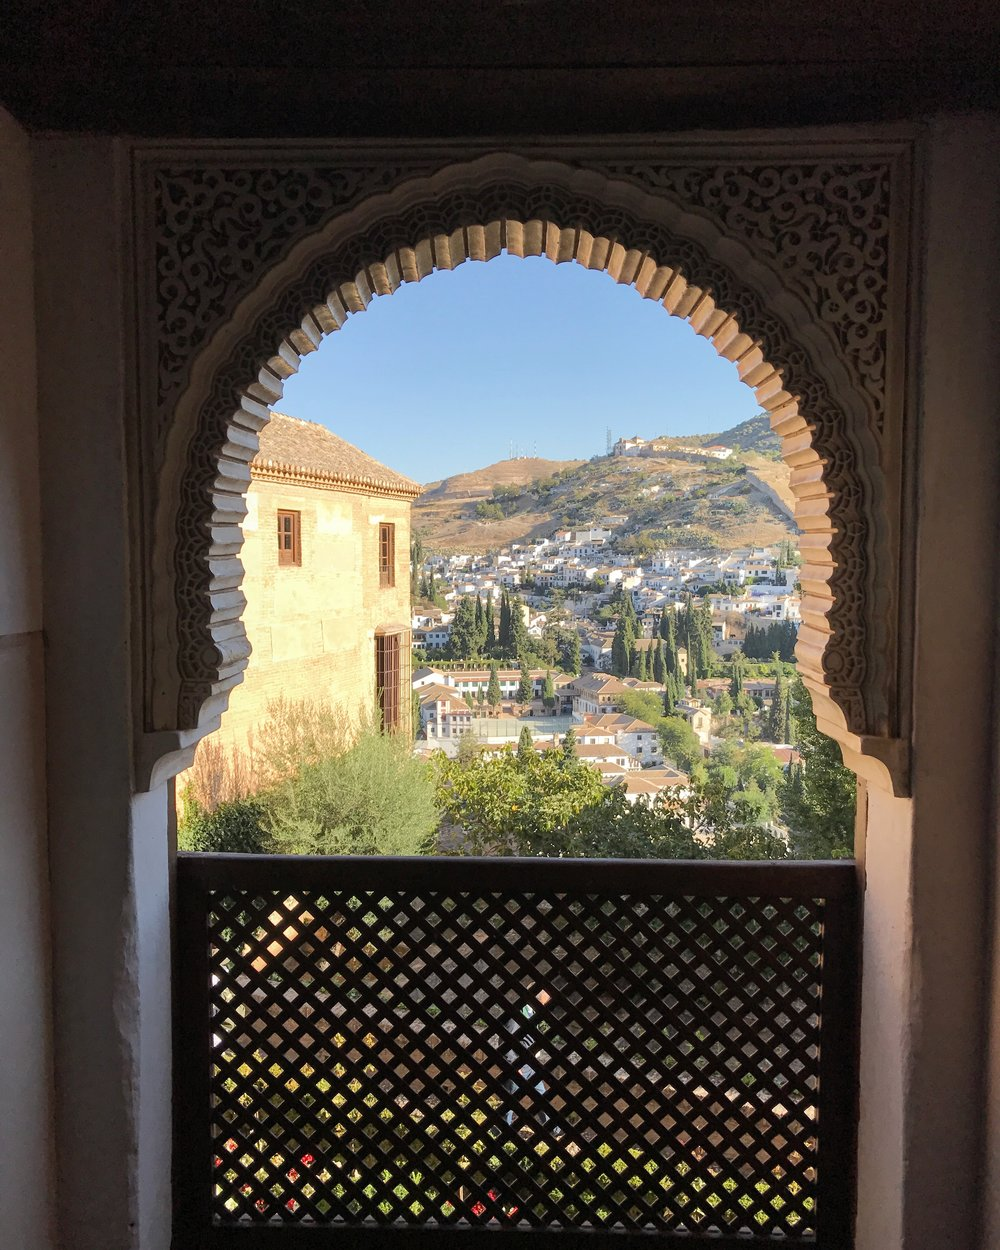 the view of Granada from inside the Alhambra